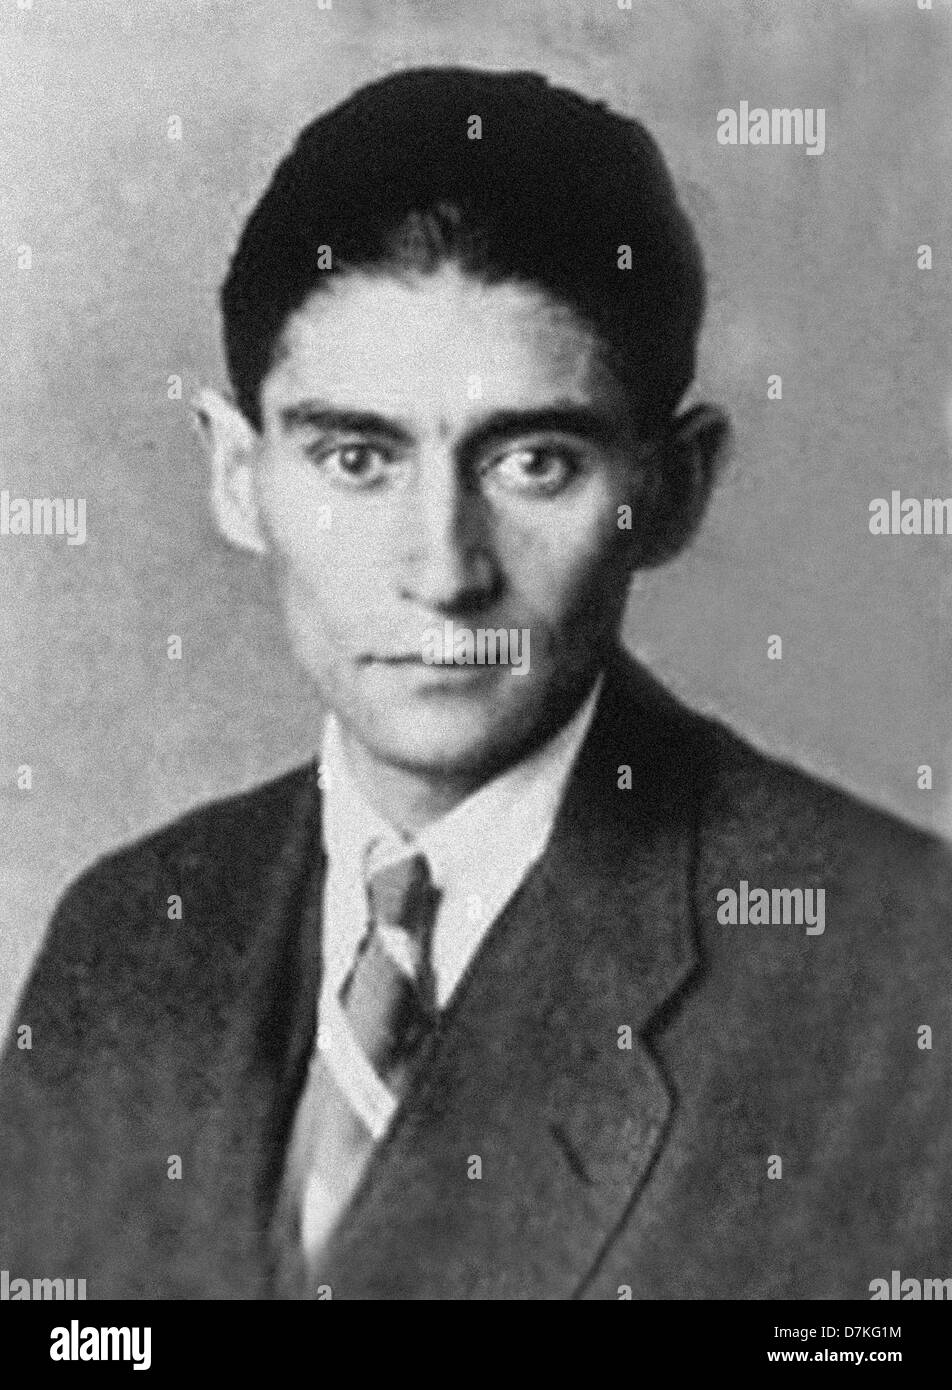 Franz Kafka was a German-language writer of novels and short stories, regarded by critics as one of the most influential Stock Photo